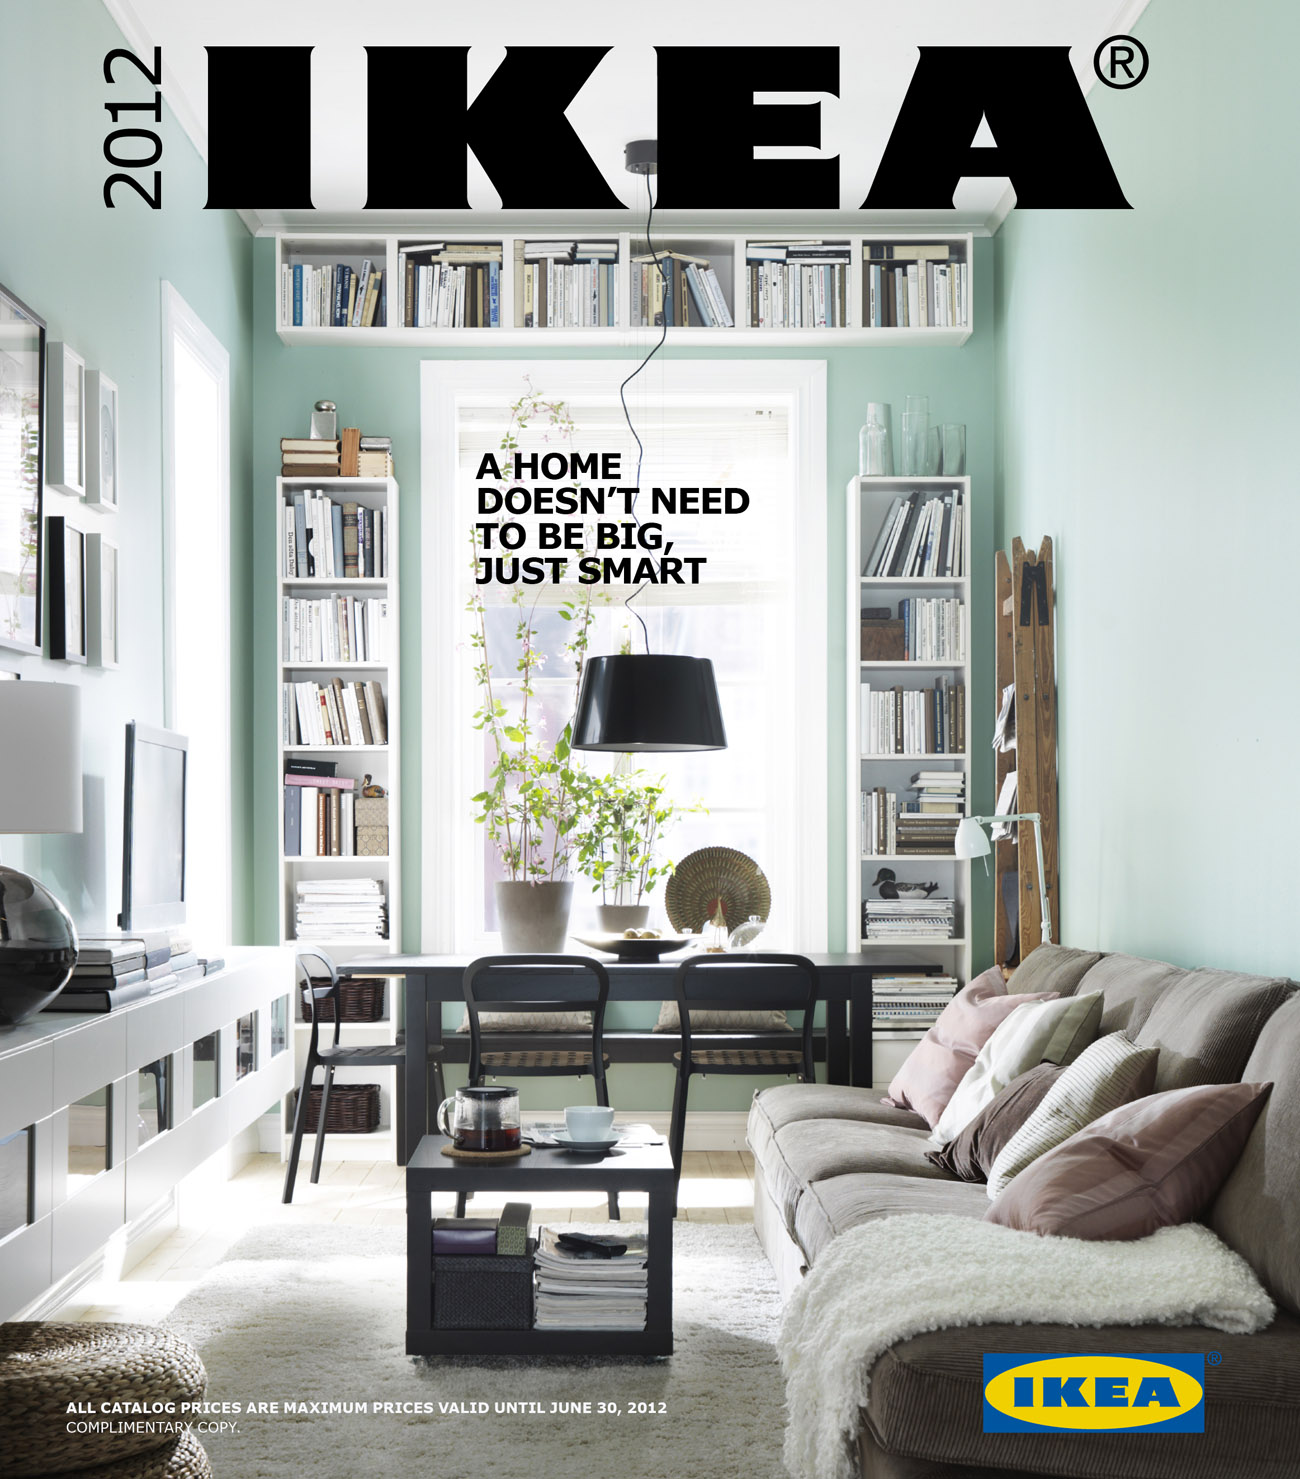 ikea katalog predstavljamo vam novi ikea katalog 2012. Black Bedroom Furniture Sets. Home Design Ideas